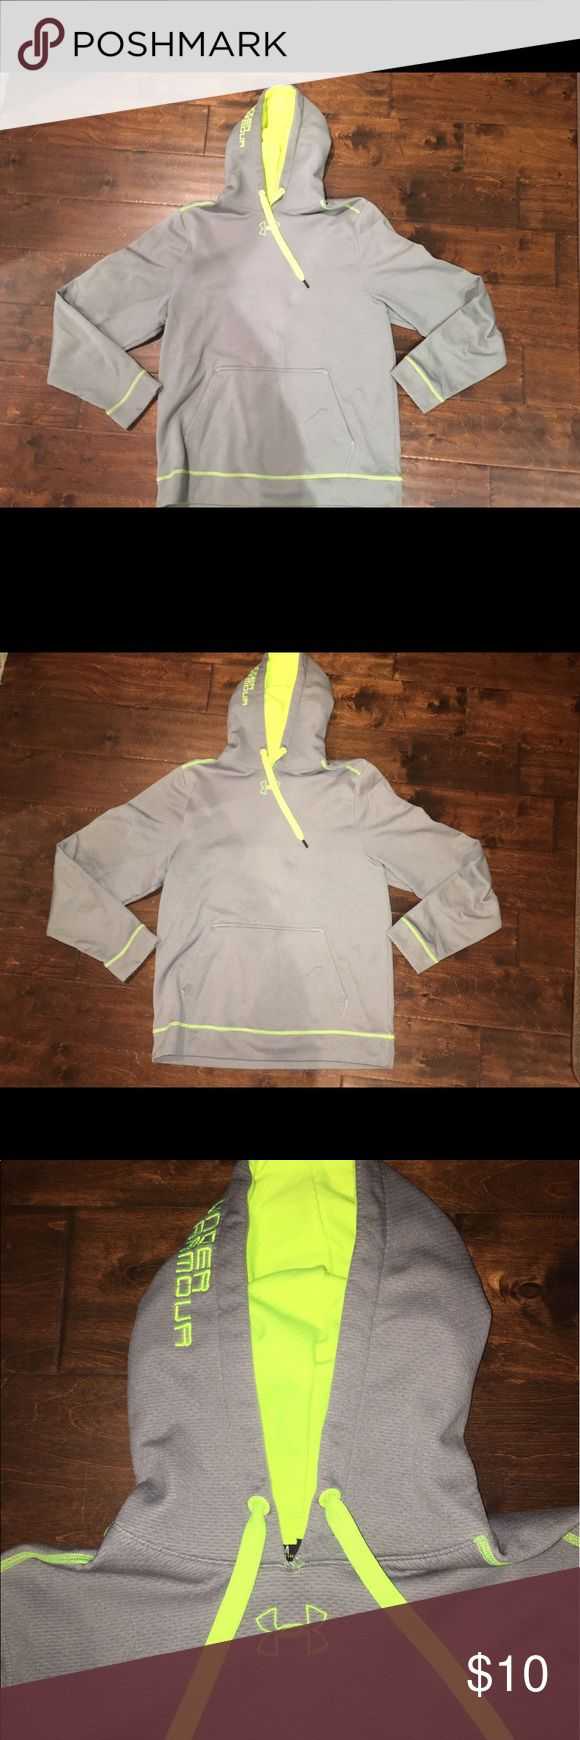 Men's Under Armout Hooded Sweatshirt Gray sweatshirt with lime green accents. Excellent condition! Under Armour Shirts Sweatshirts & Hoodies